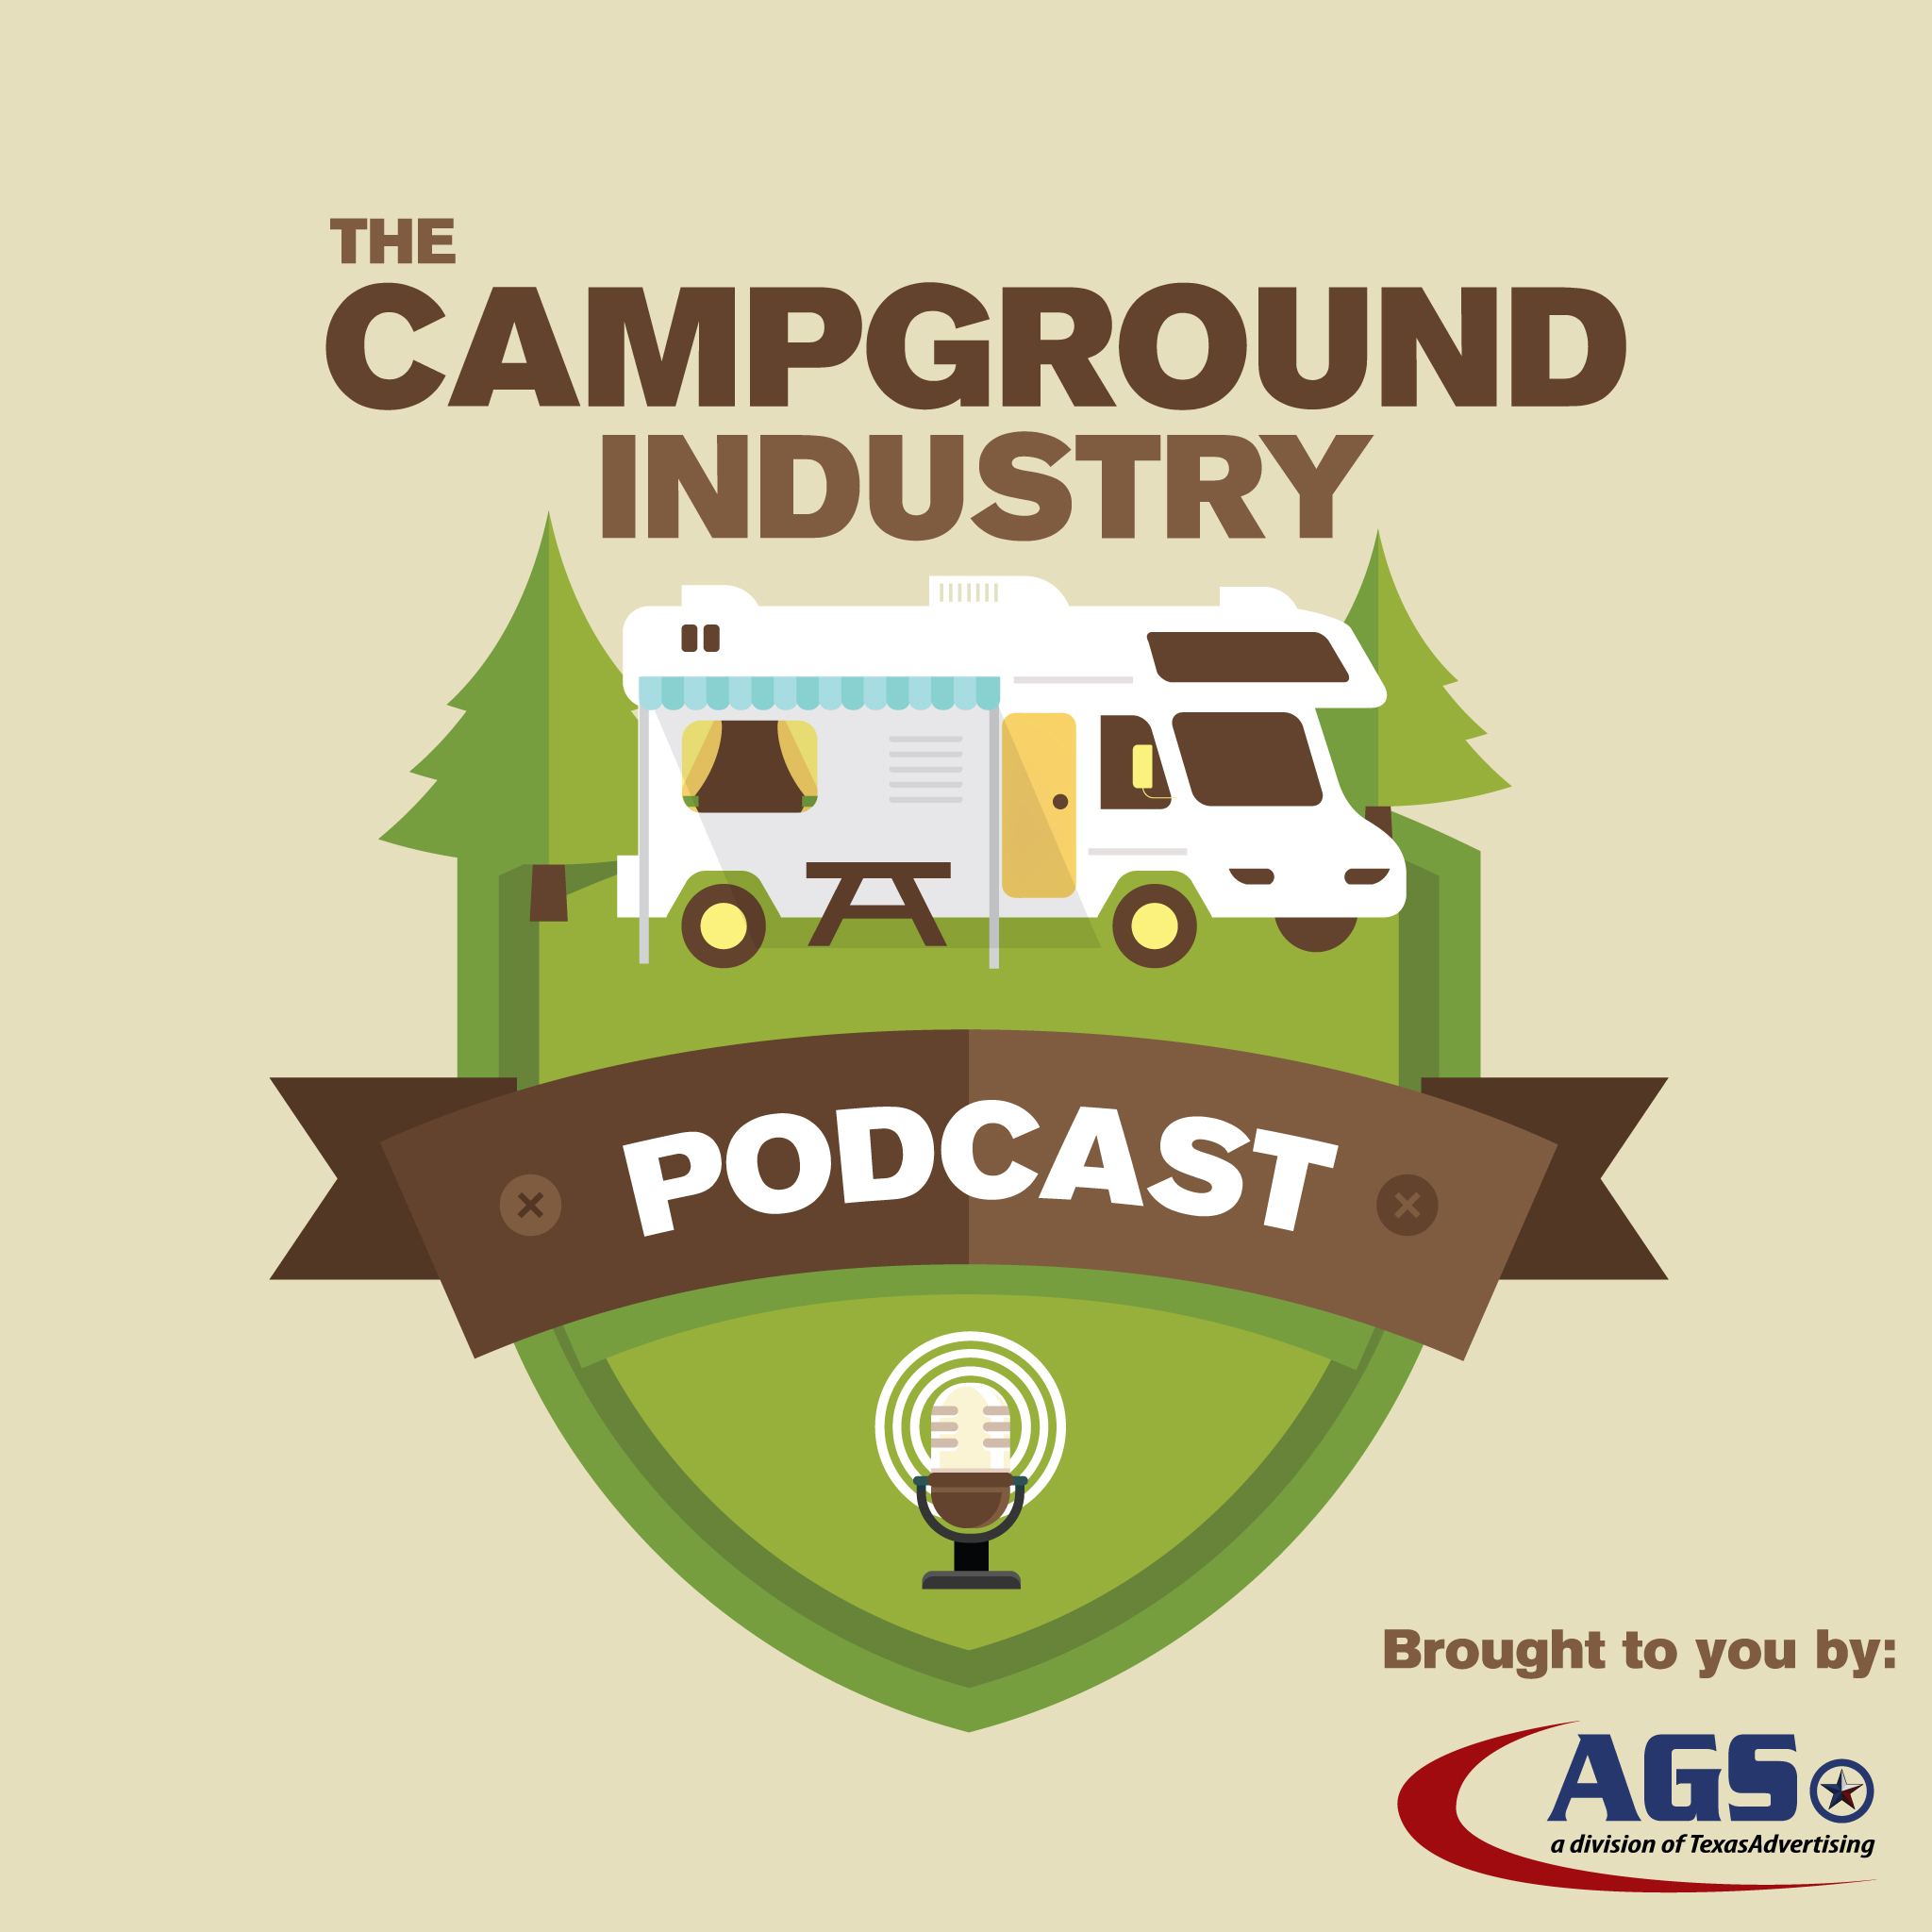 Campground Industry Podcast